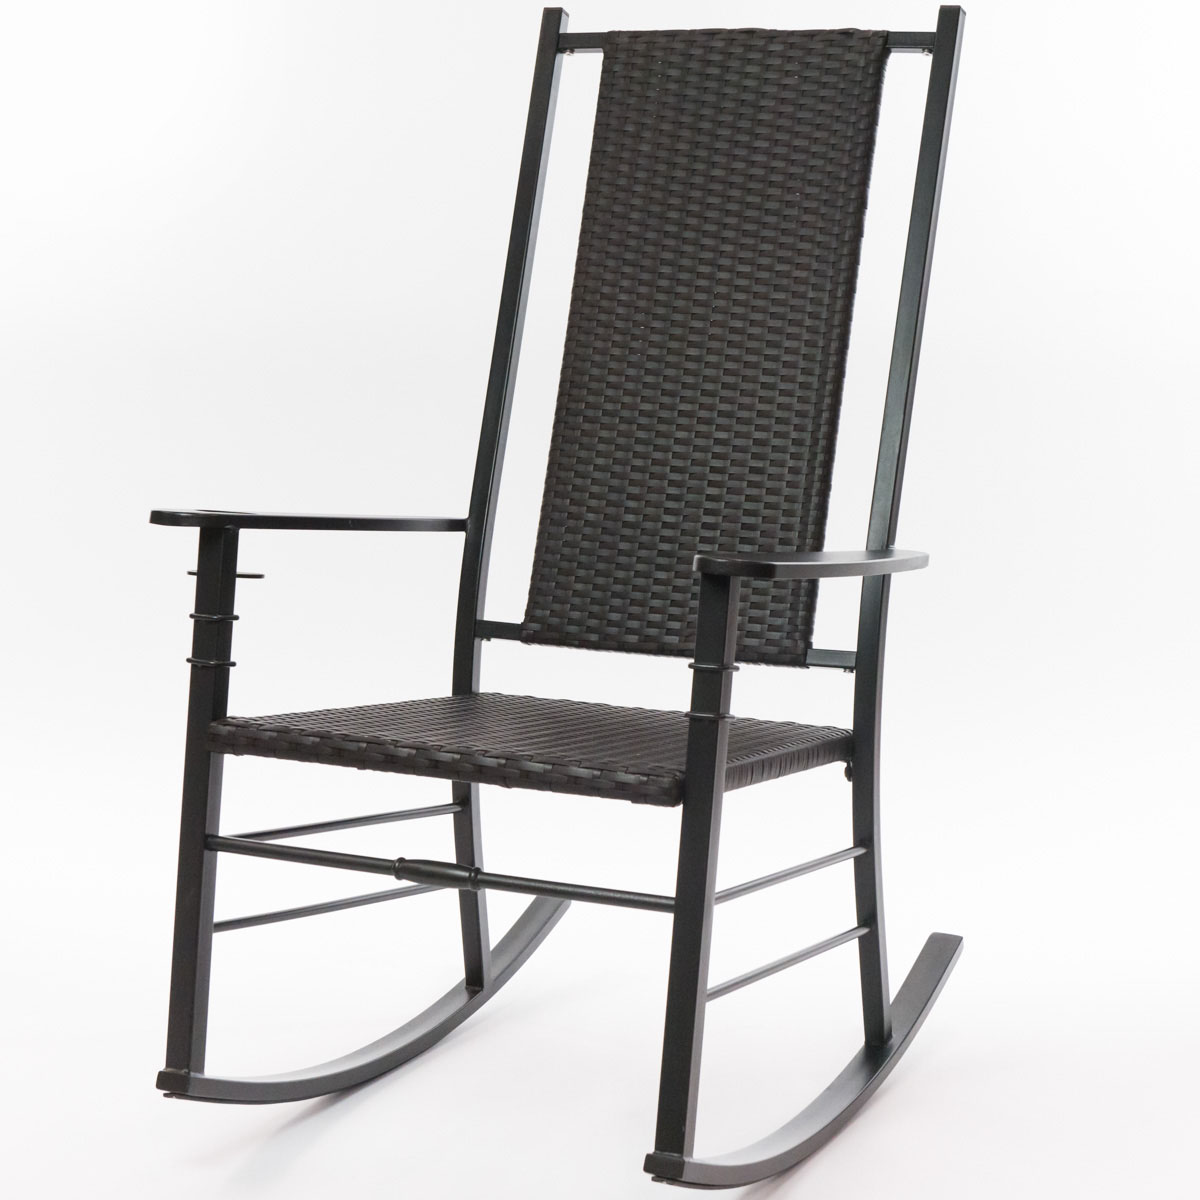 Outstanding Black Palm Harbor Wicker Rocking Chair Bralicious Painted Fabric Chair Ideas Braliciousco